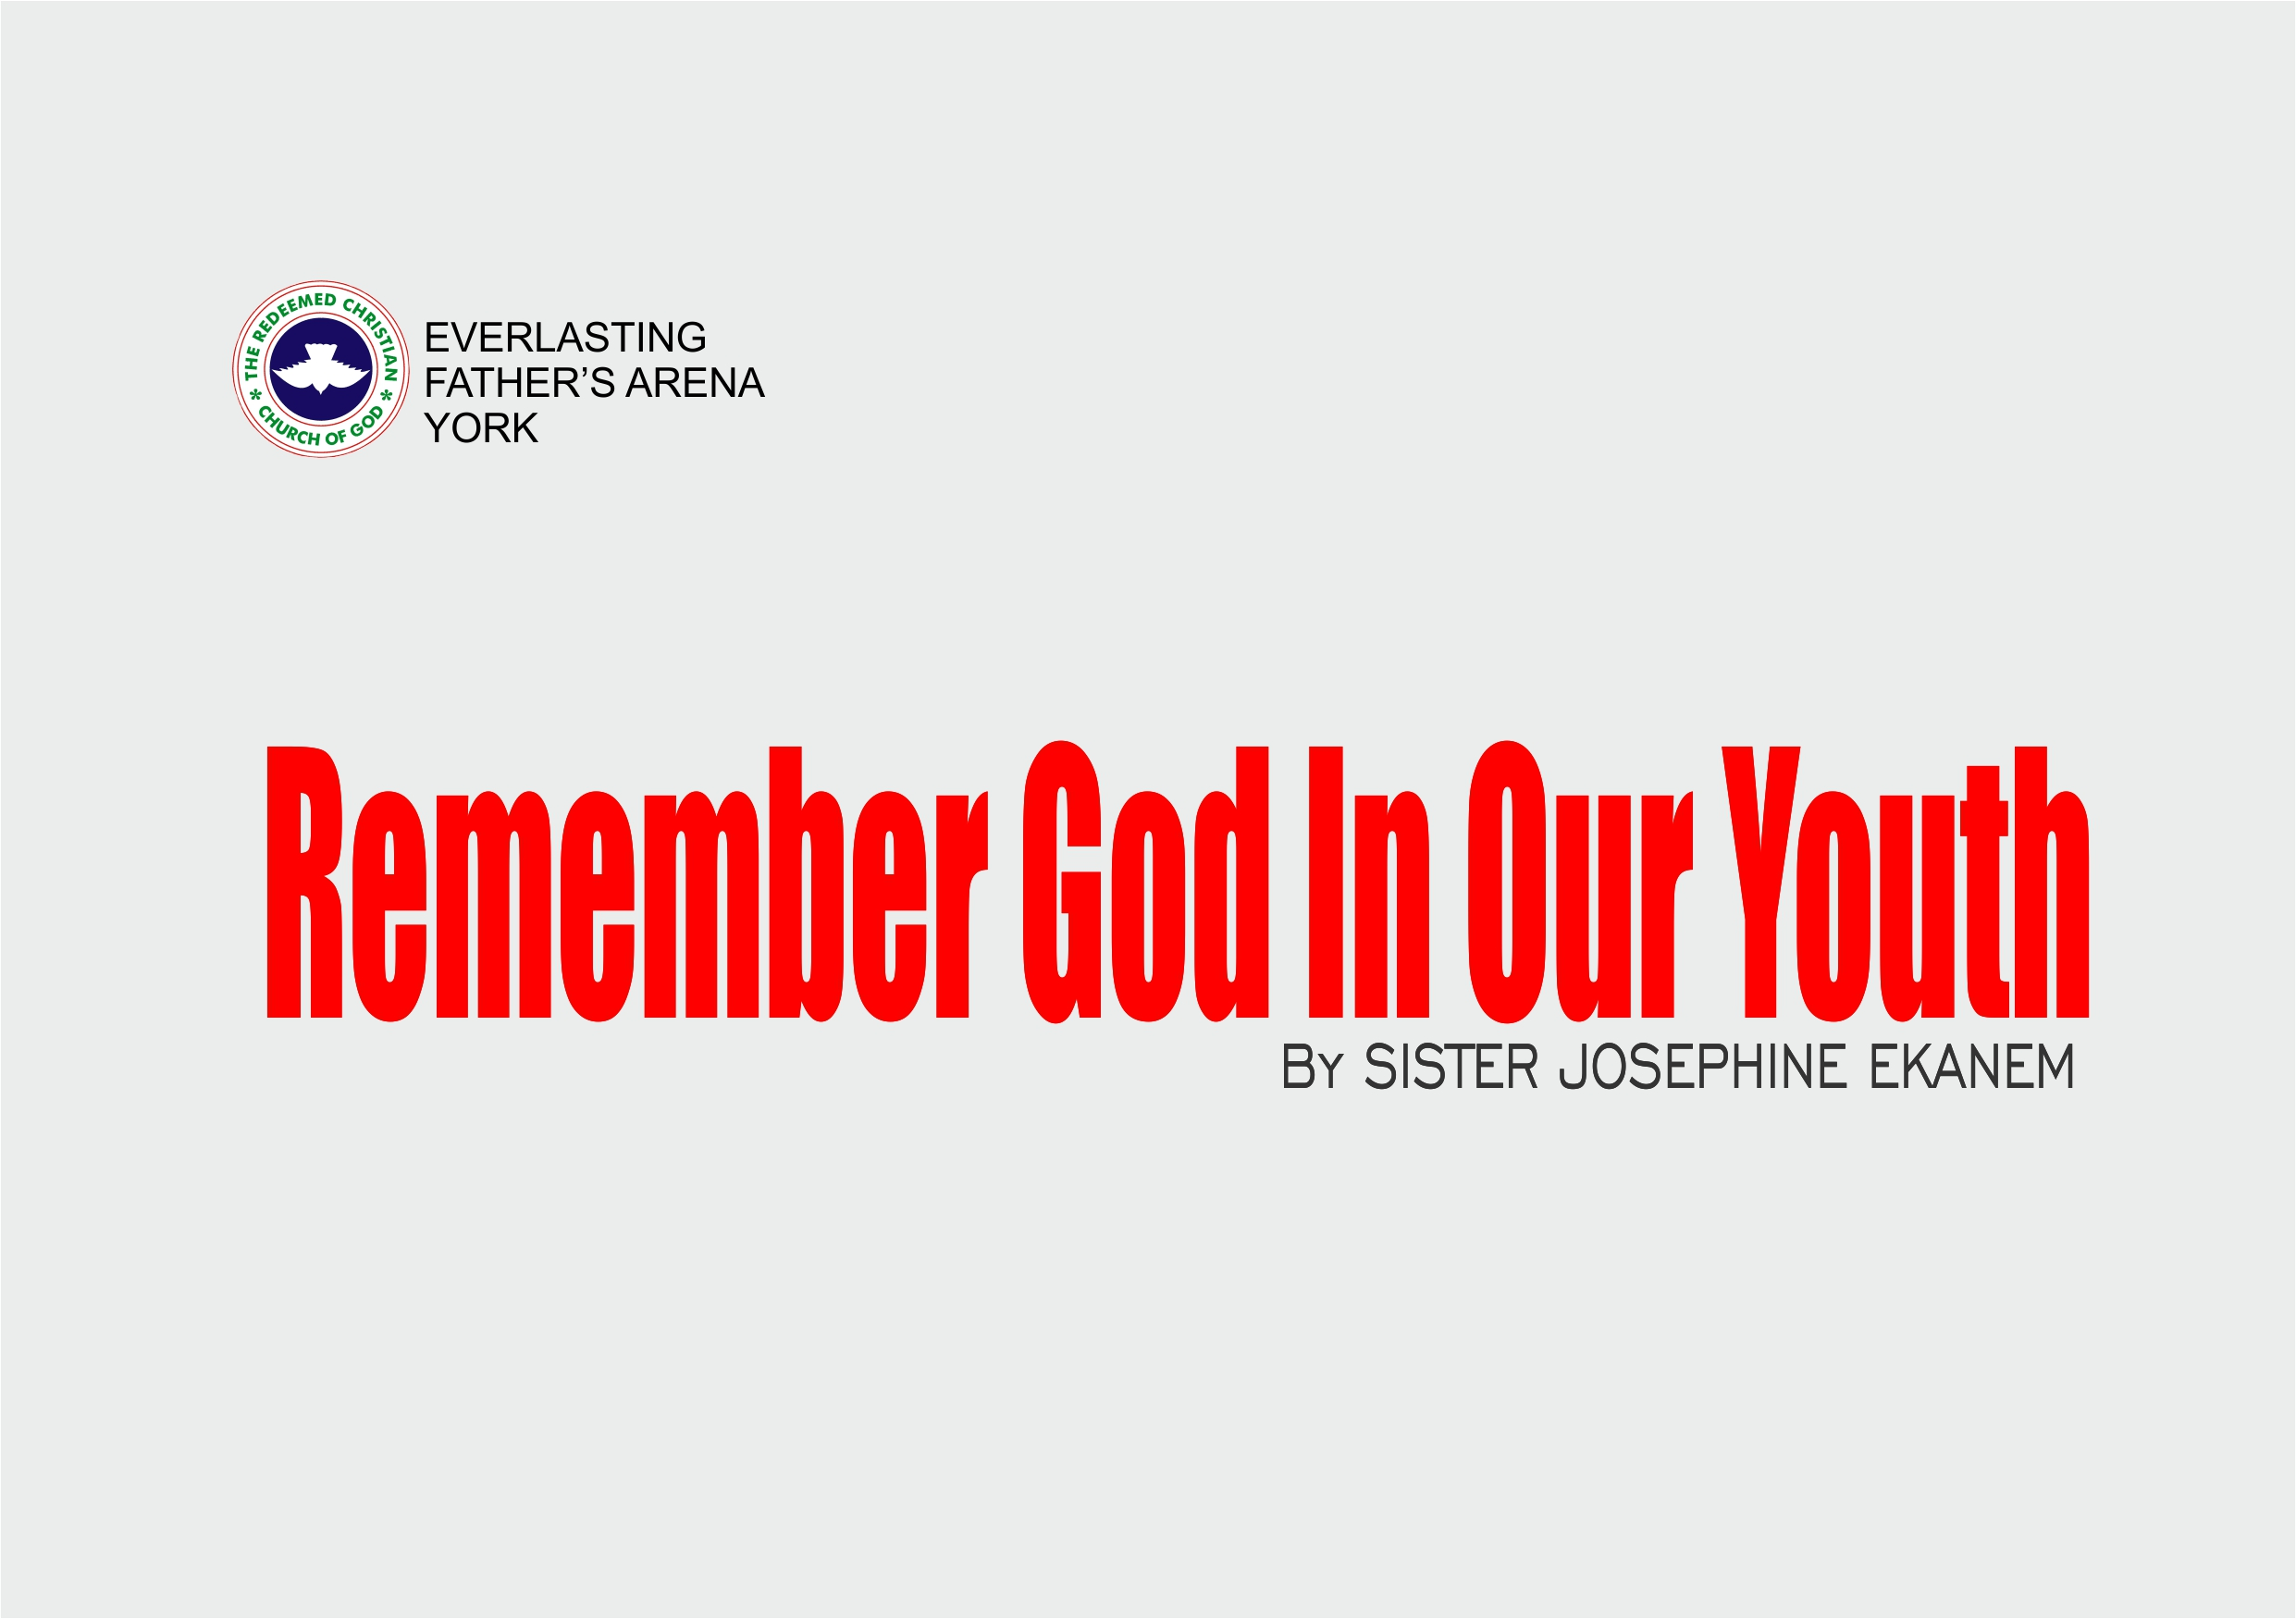 Remember God in our Youth, By Sister Josephine Ekanem